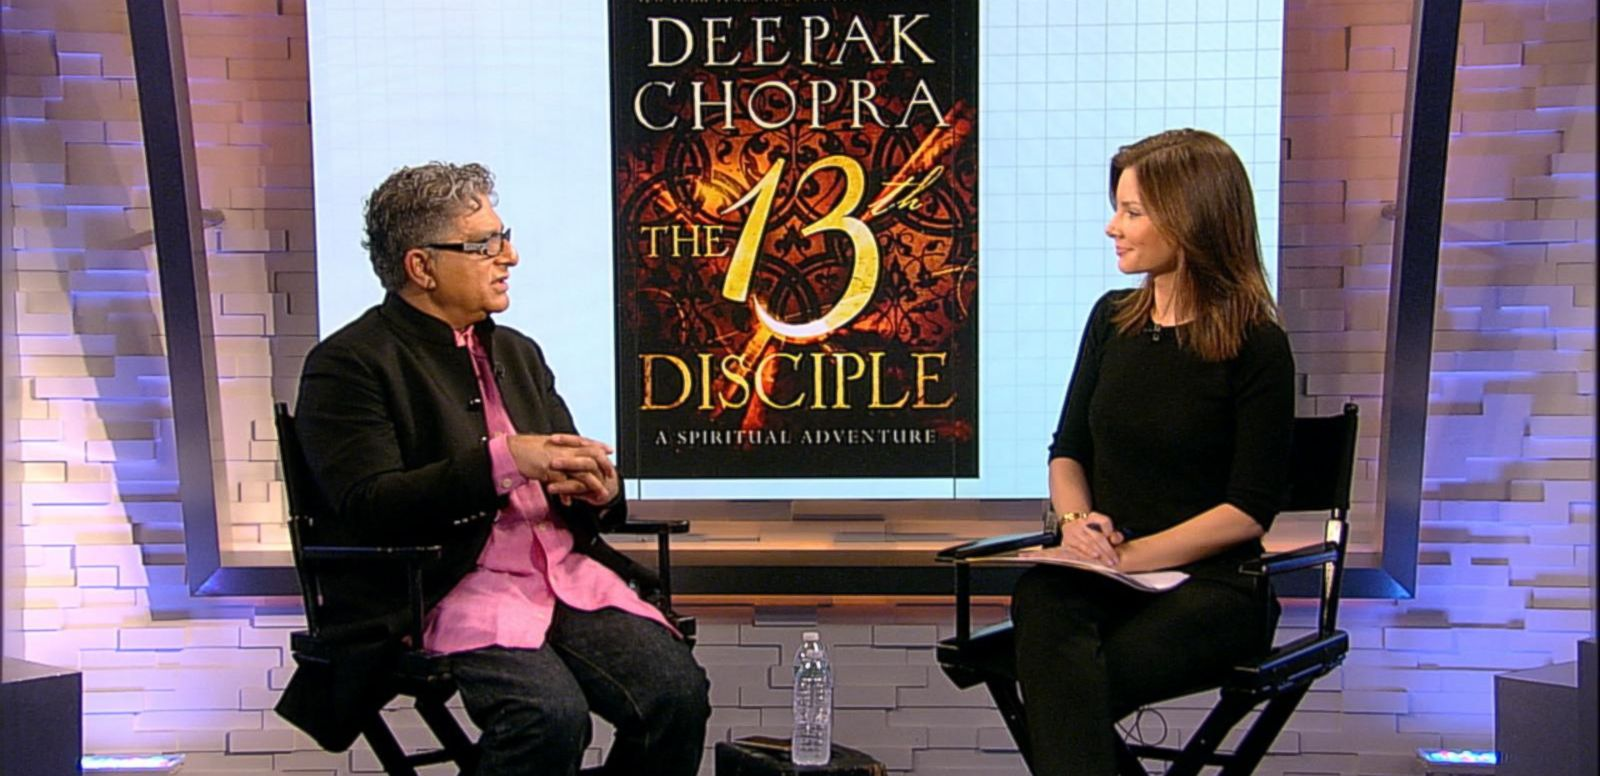 VIDEO: 'Real Biz' Rapid Fire: 10 Things You Don't Know About Deepak Chopra